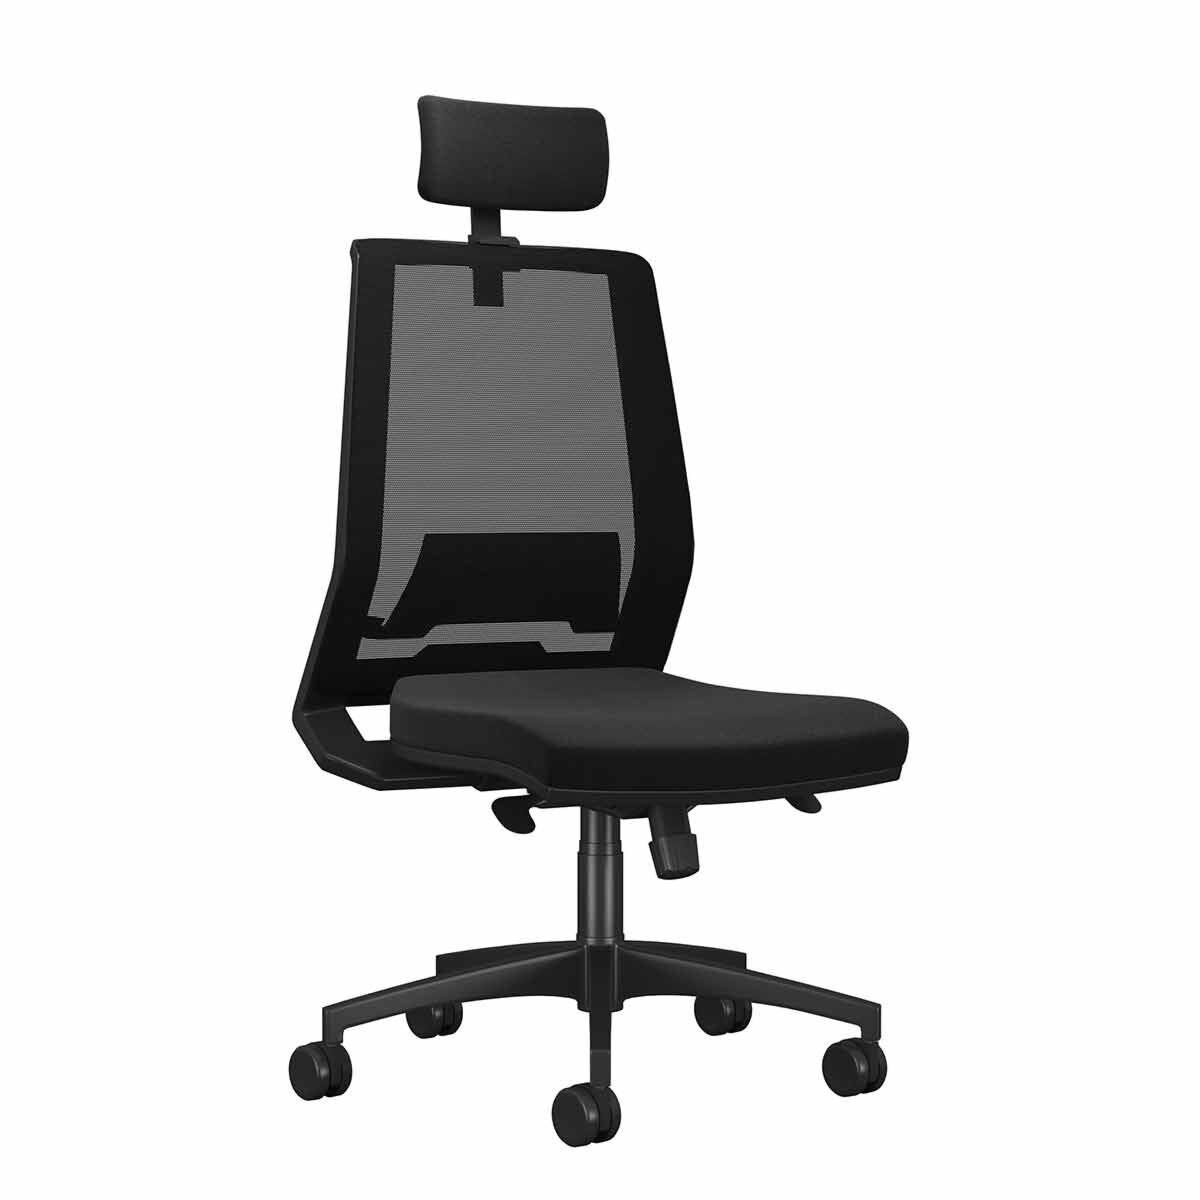 TC Office Rome Mesh High Back Chair with Headrest Black